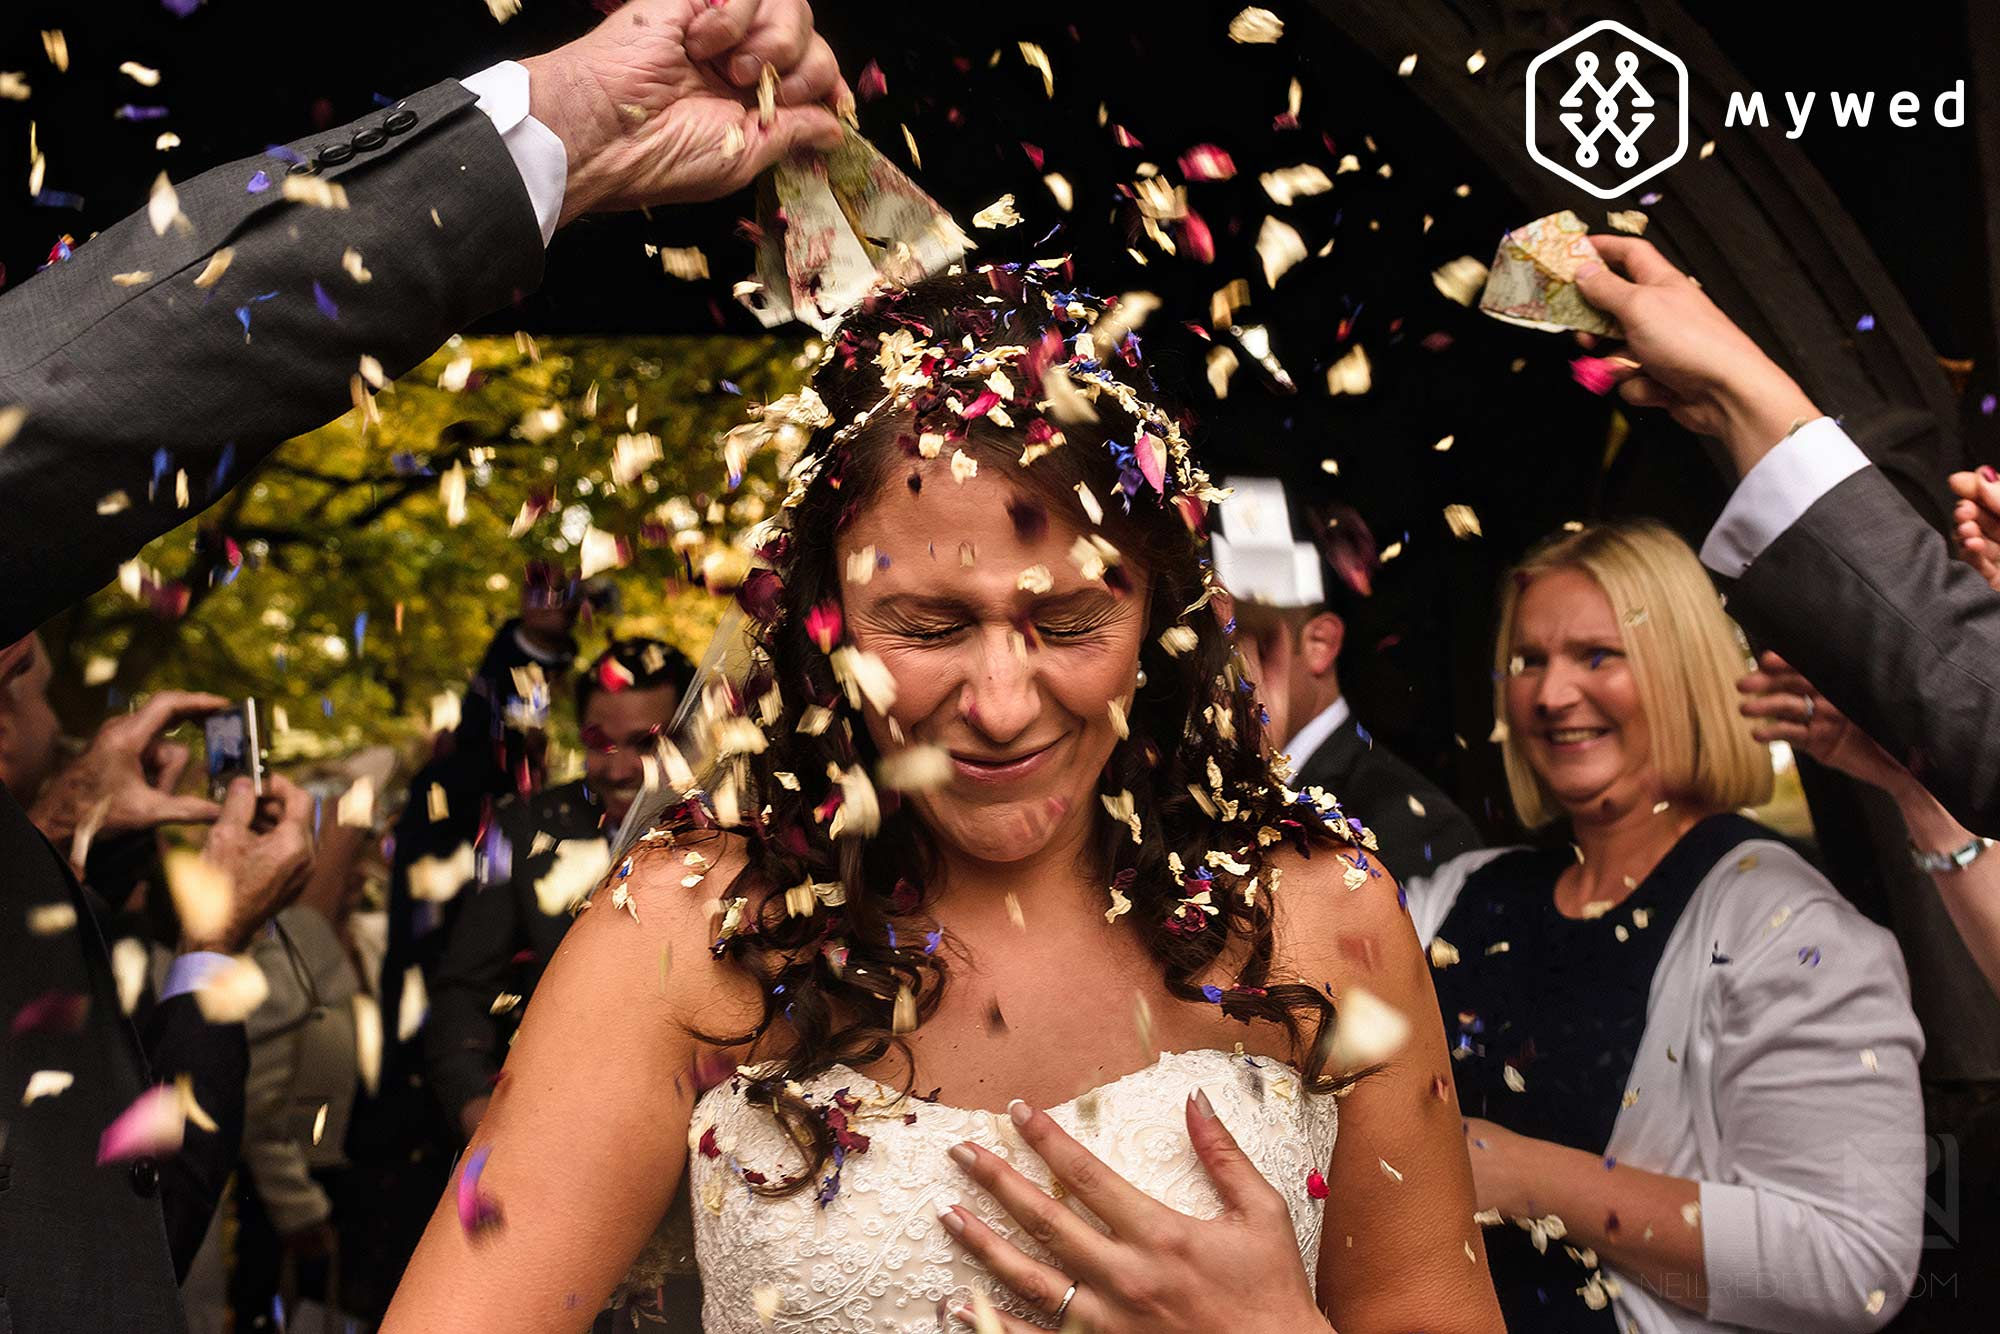 Award winning wedding photograph of confetti being thrown over a bride